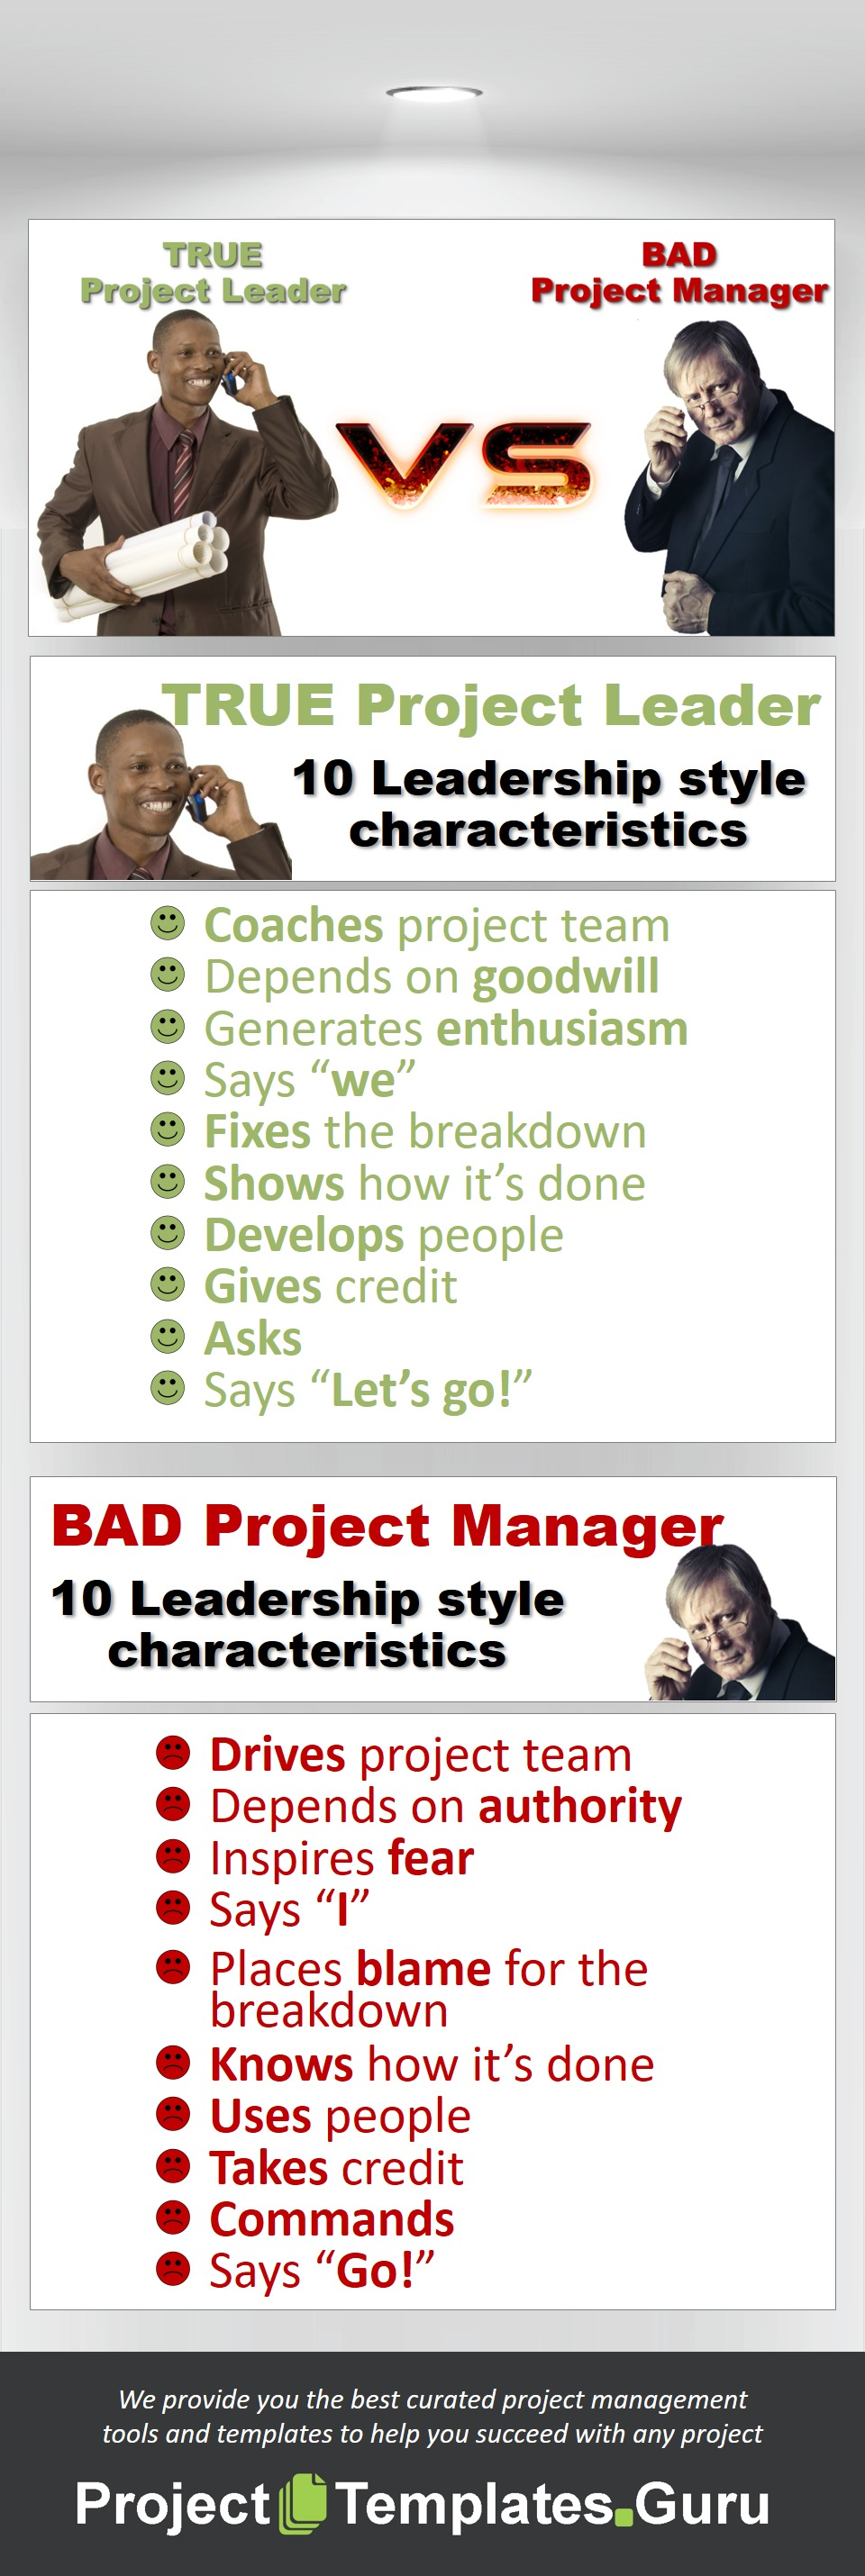 Bad-Project-Manager-vs-True-Project-Leader-Infographic